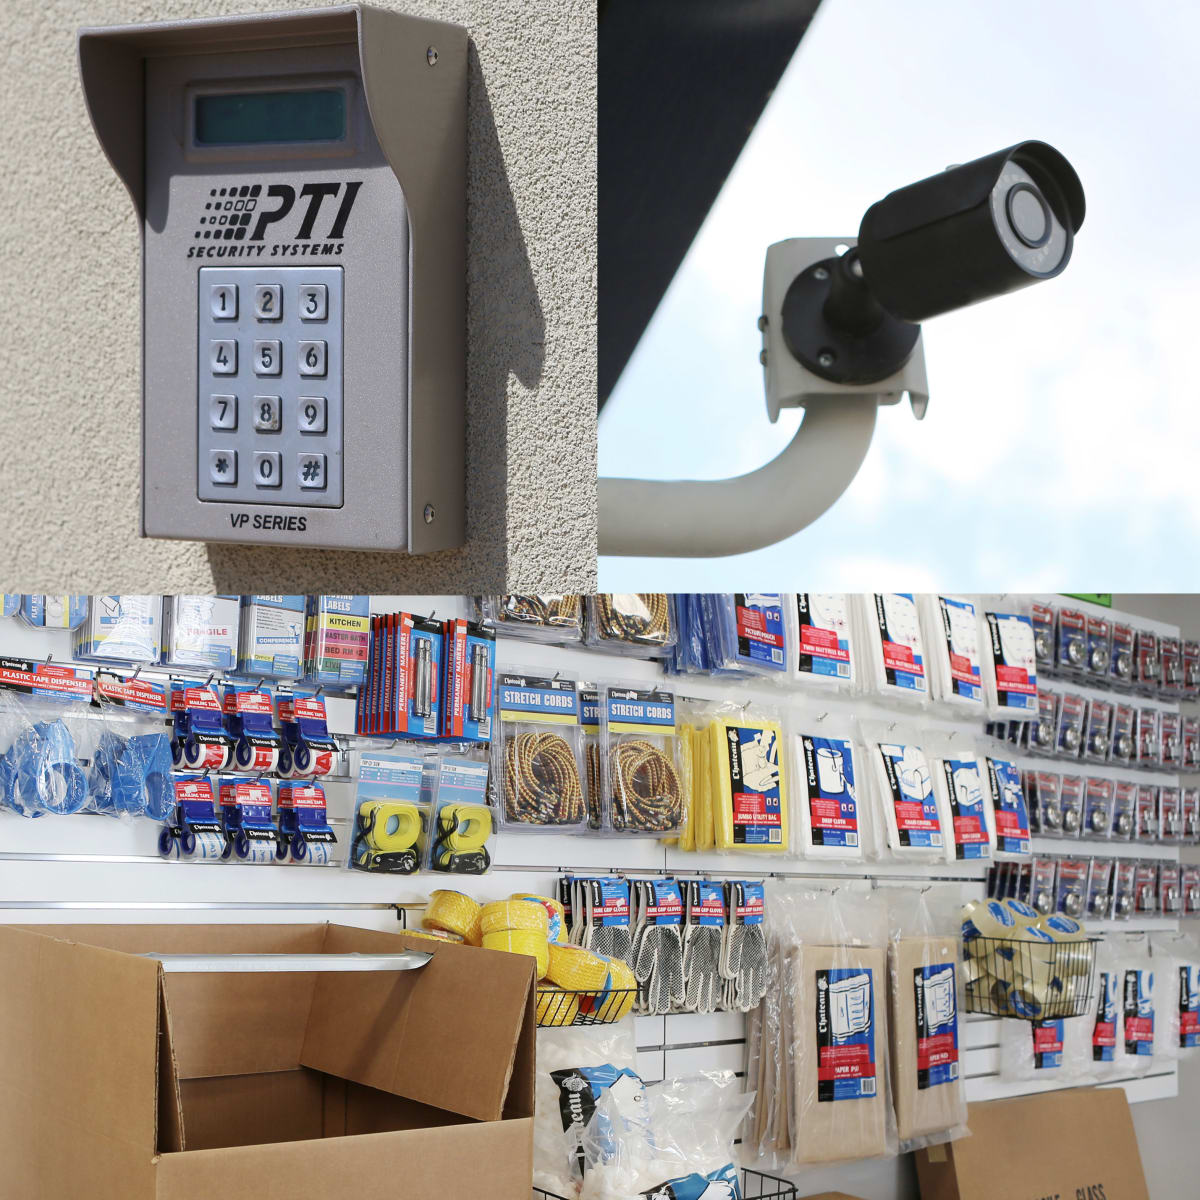 We provide 24 hour security monitoring and sell various moving and packing supplies at StoreSmart Self-Storage in Buford, Georgia